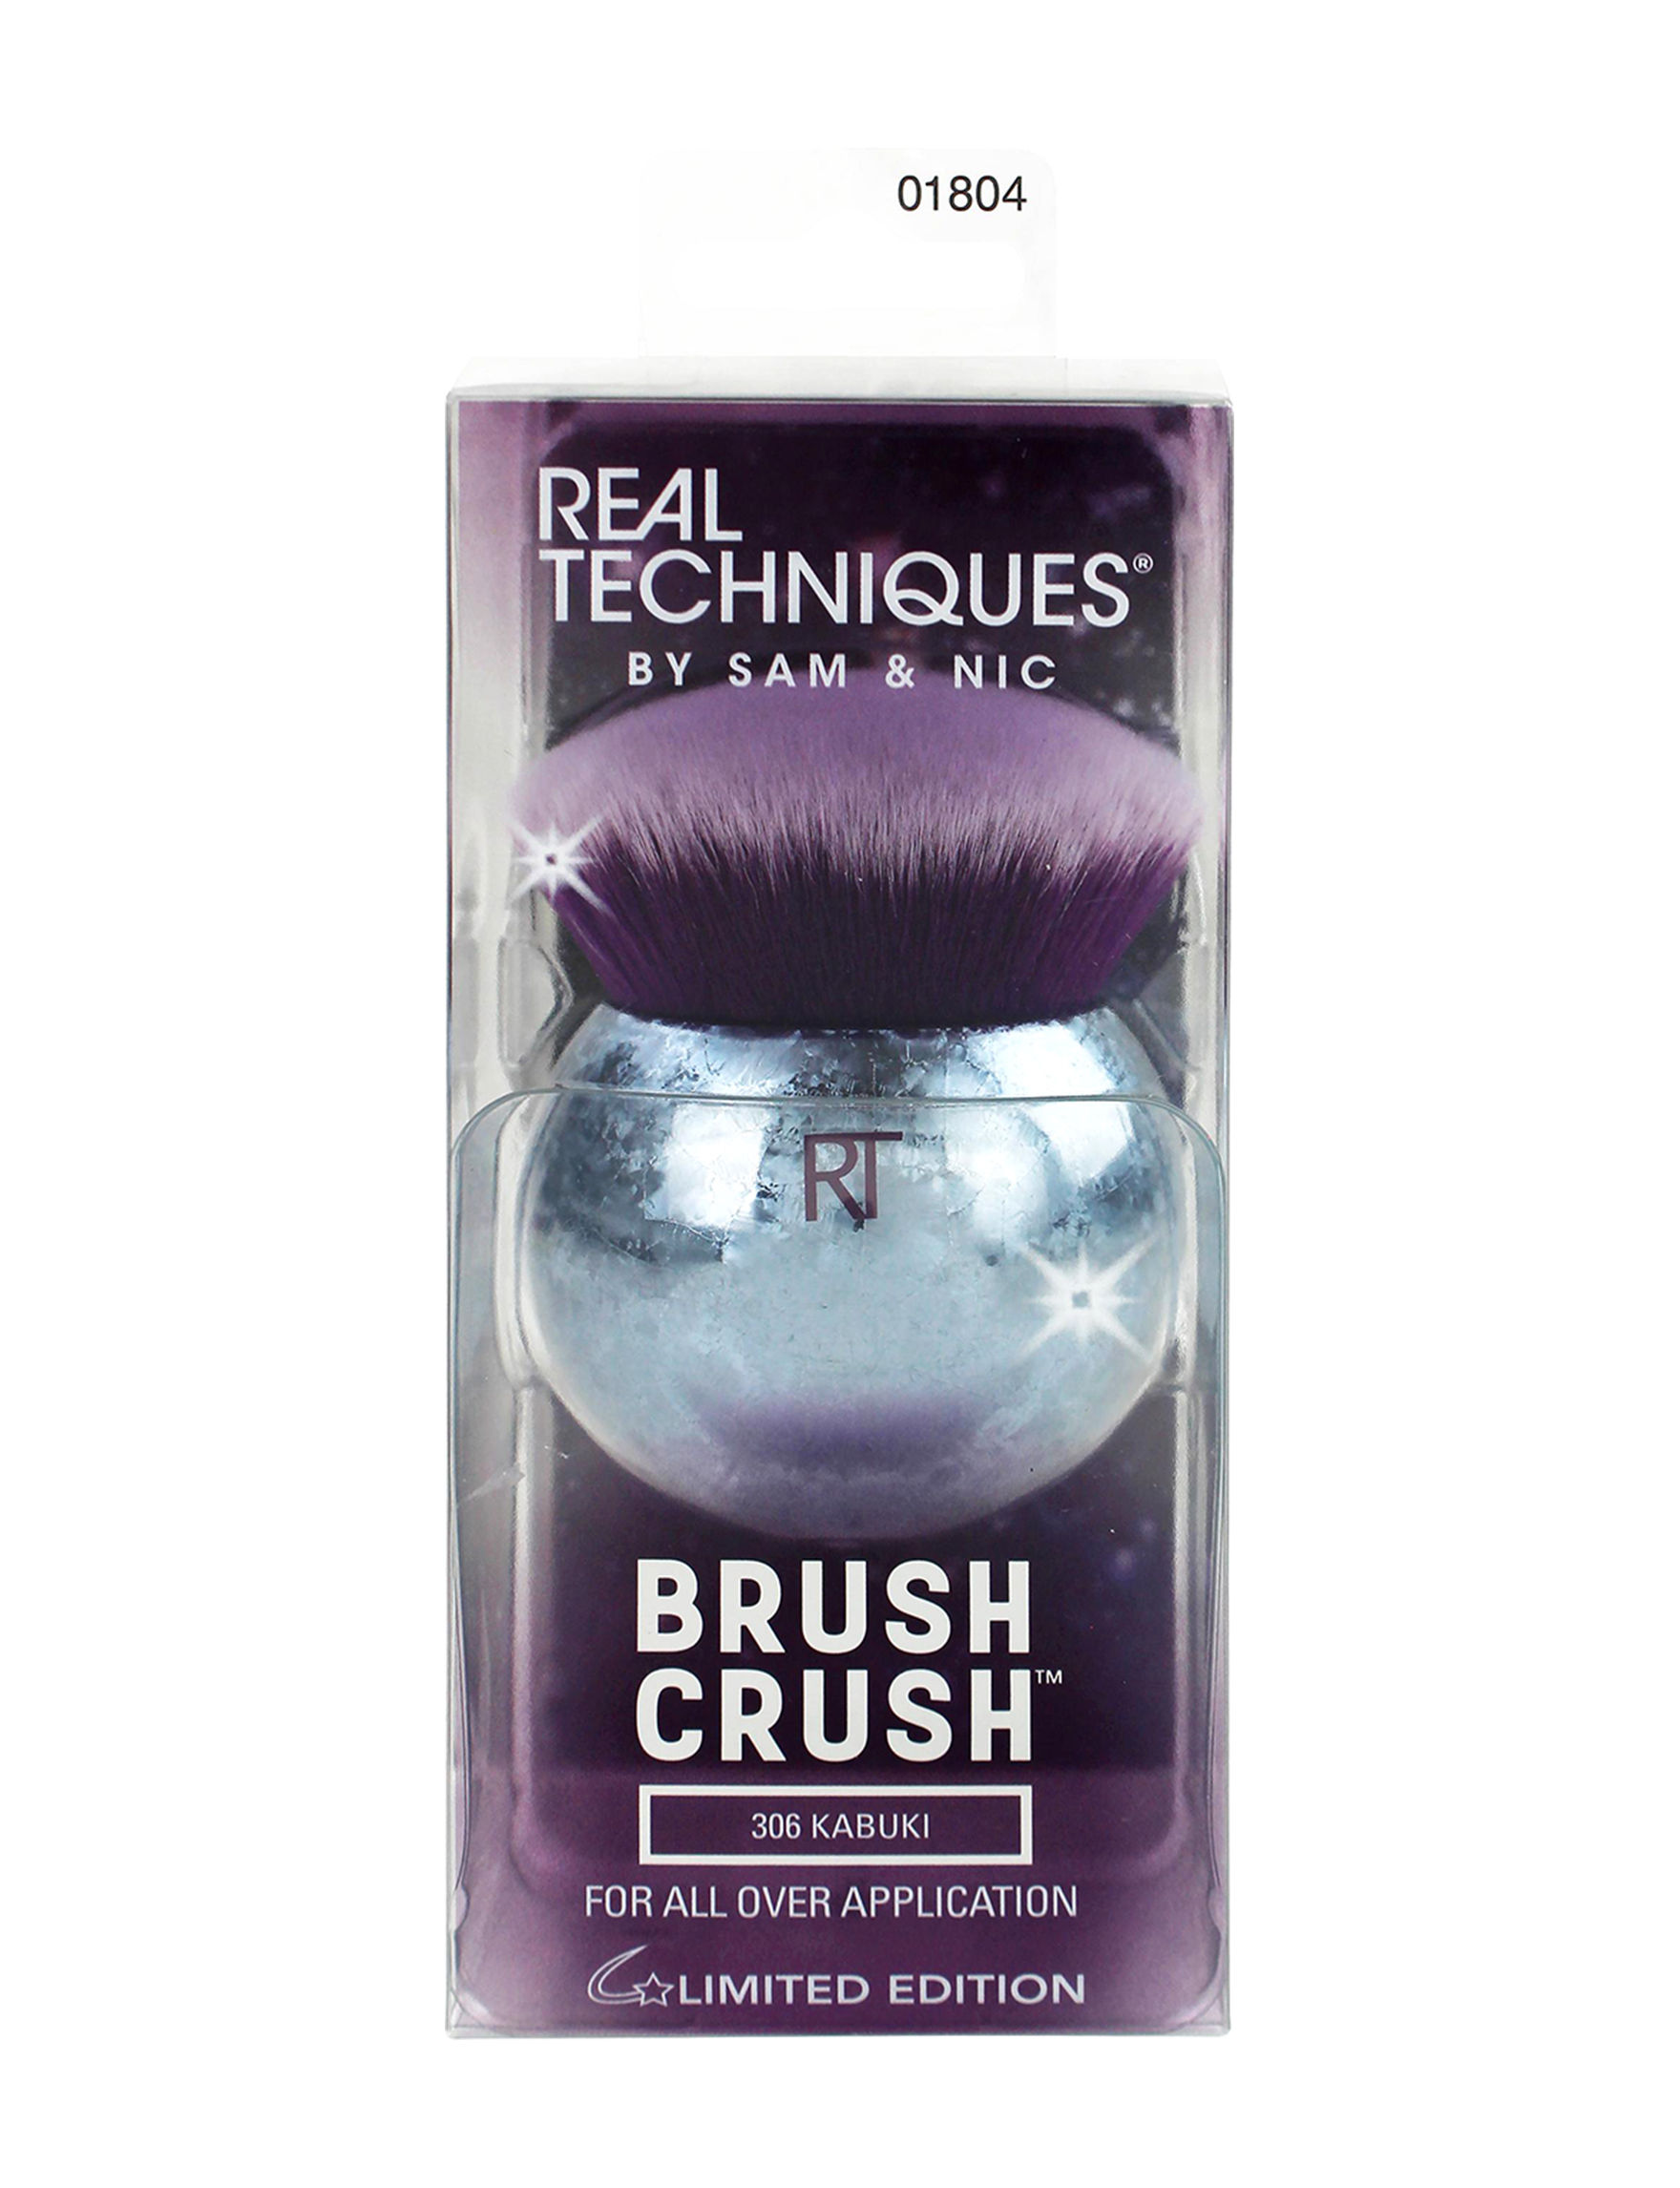 Real Techniques Silver / Purple Tools & Brushes Bronzer Brush Powder Brush